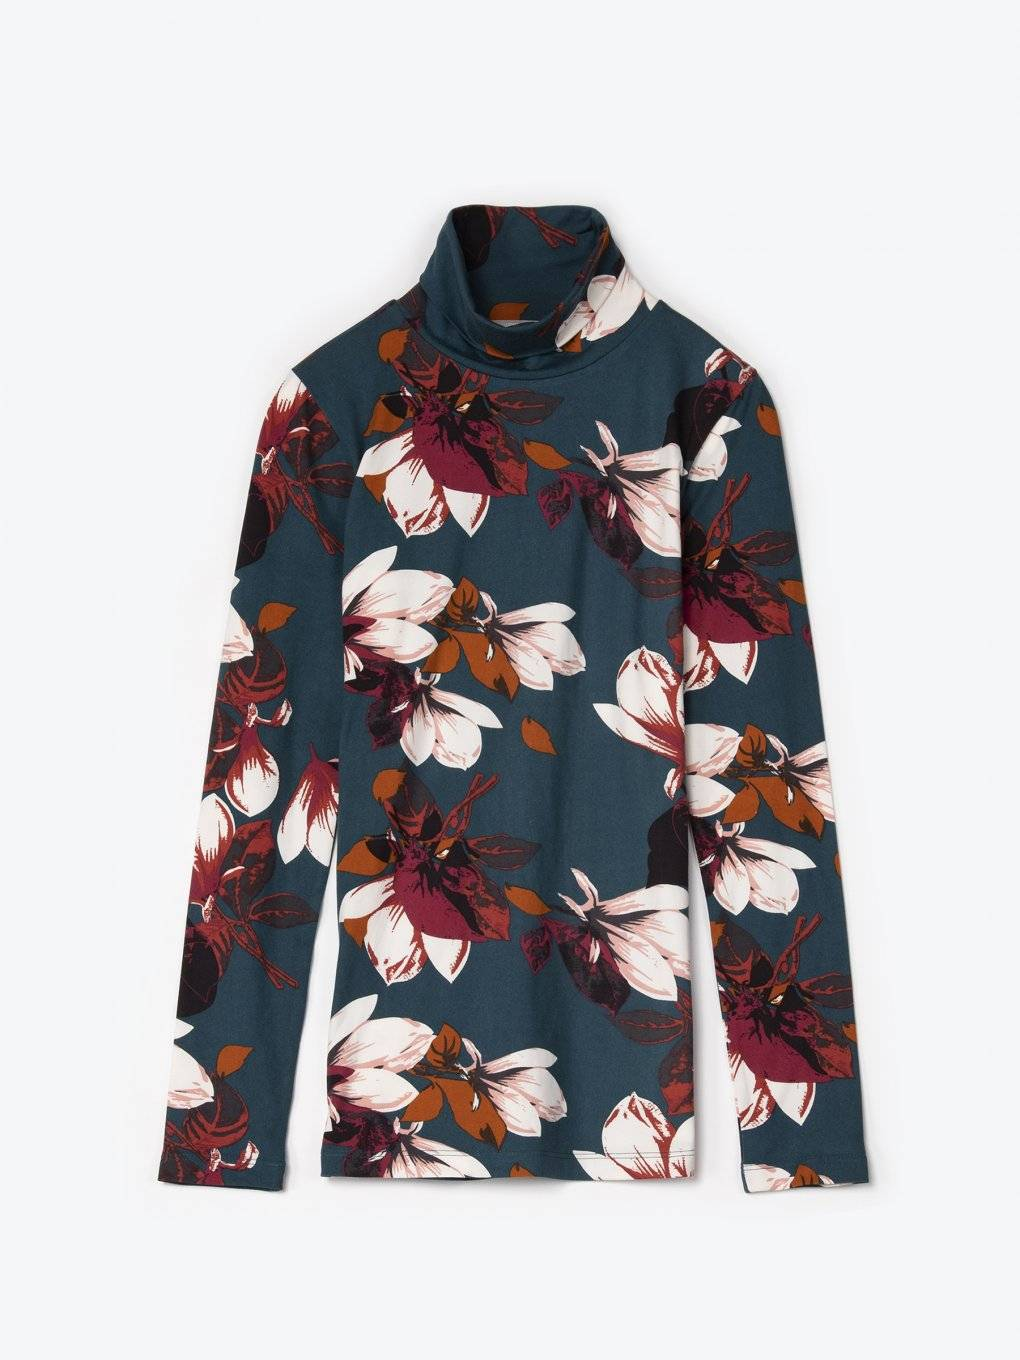 Flower print turtleneck t-shirt